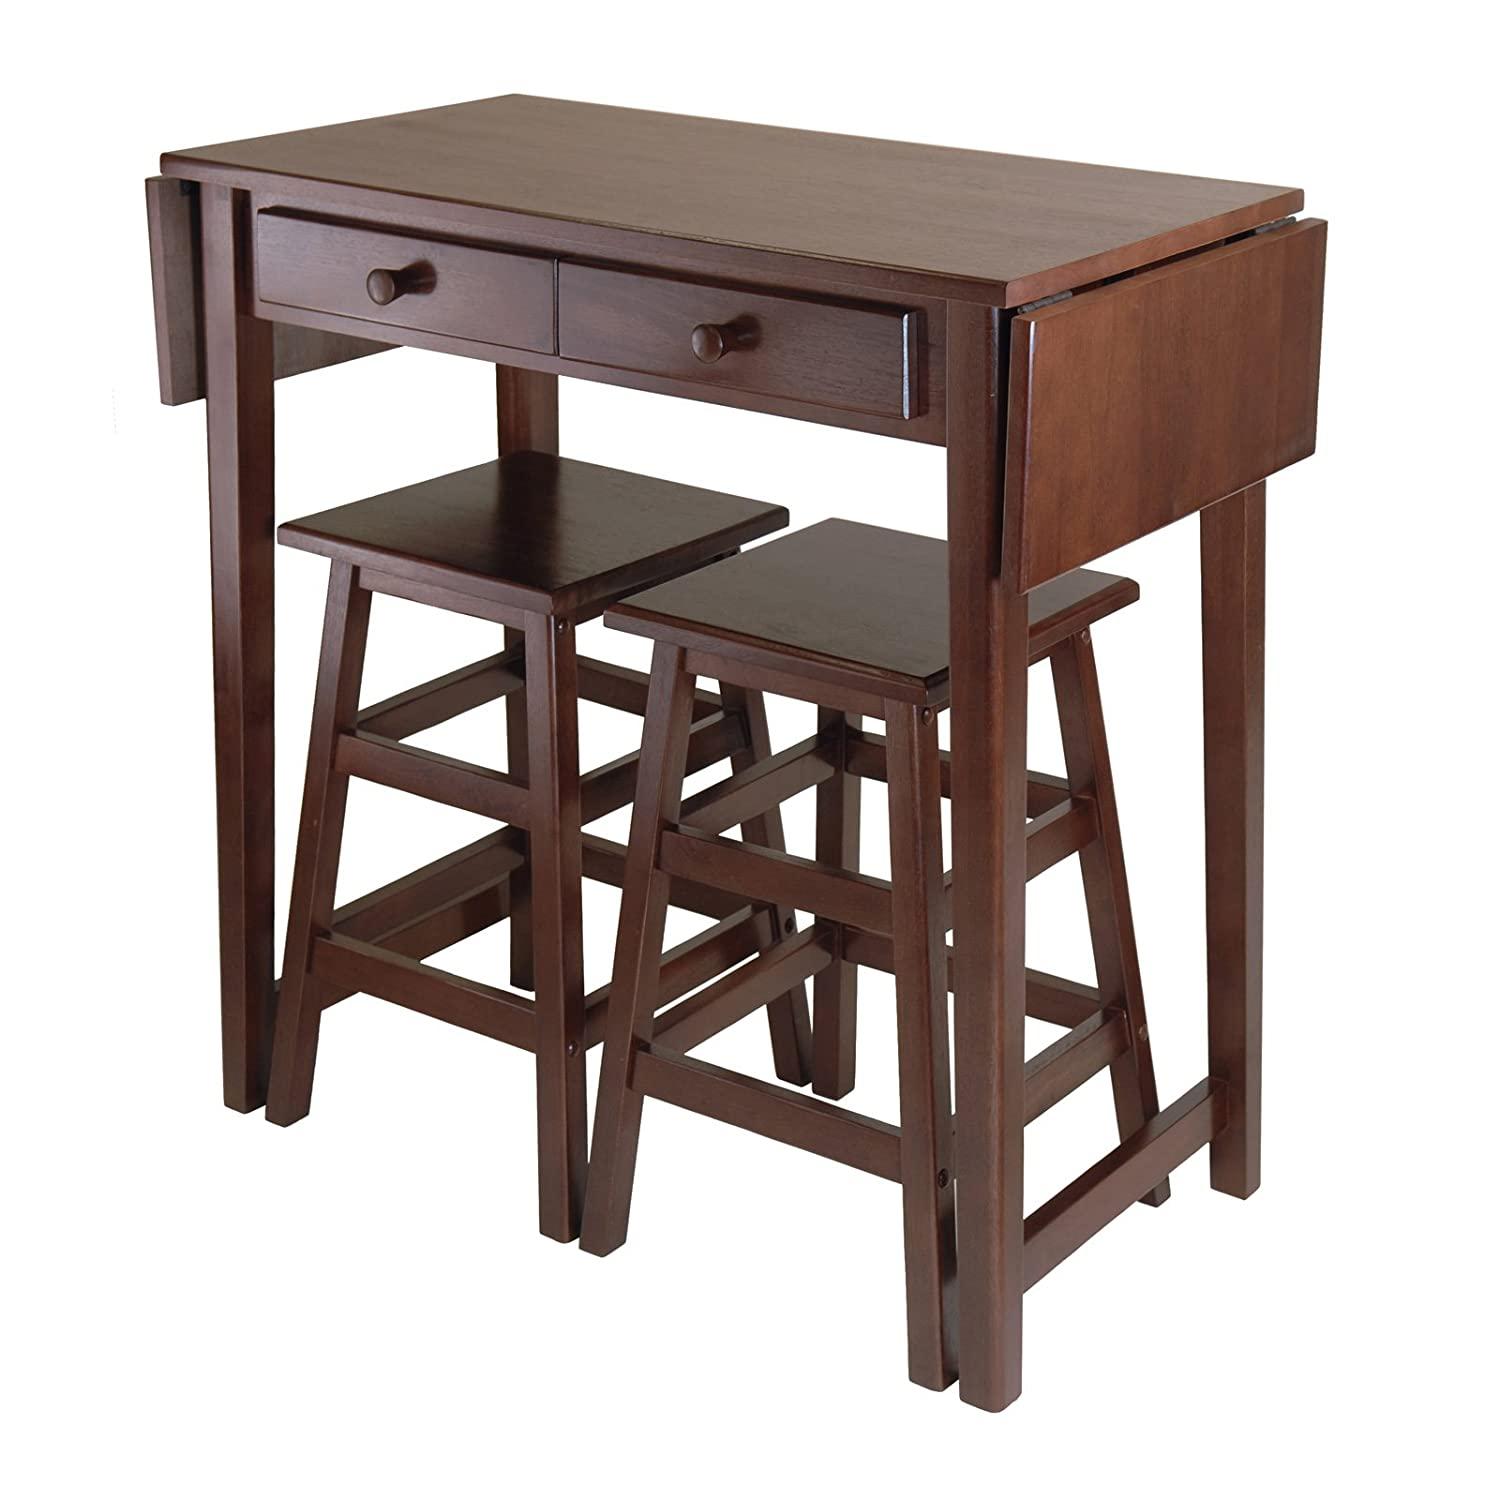 Charmant Amazon.com   Winsome Mercer Double Drop Leaf Table With 2 Stools   Table U0026  Chair Sets